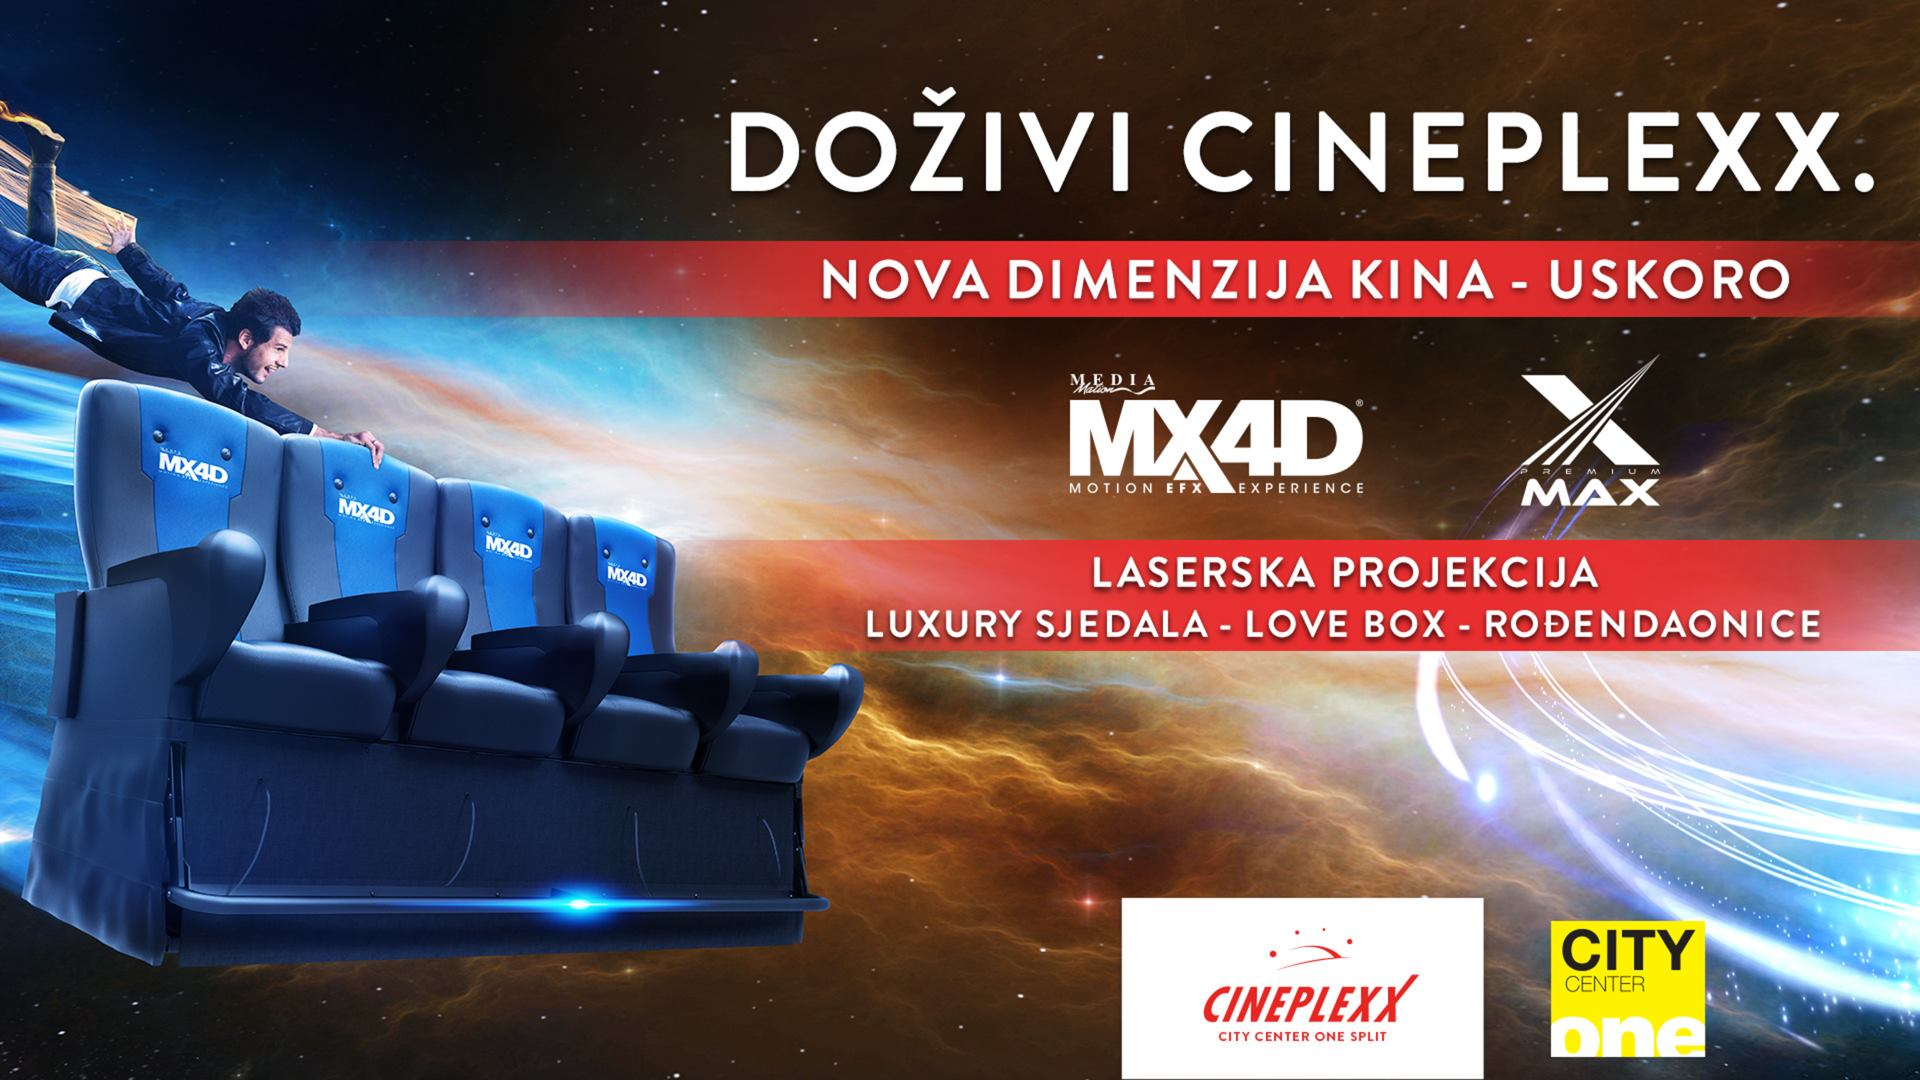 FOTO: VIDEO: Cineplexx kino u City Centeru one Split uskoro otvara MX4D dvoranu